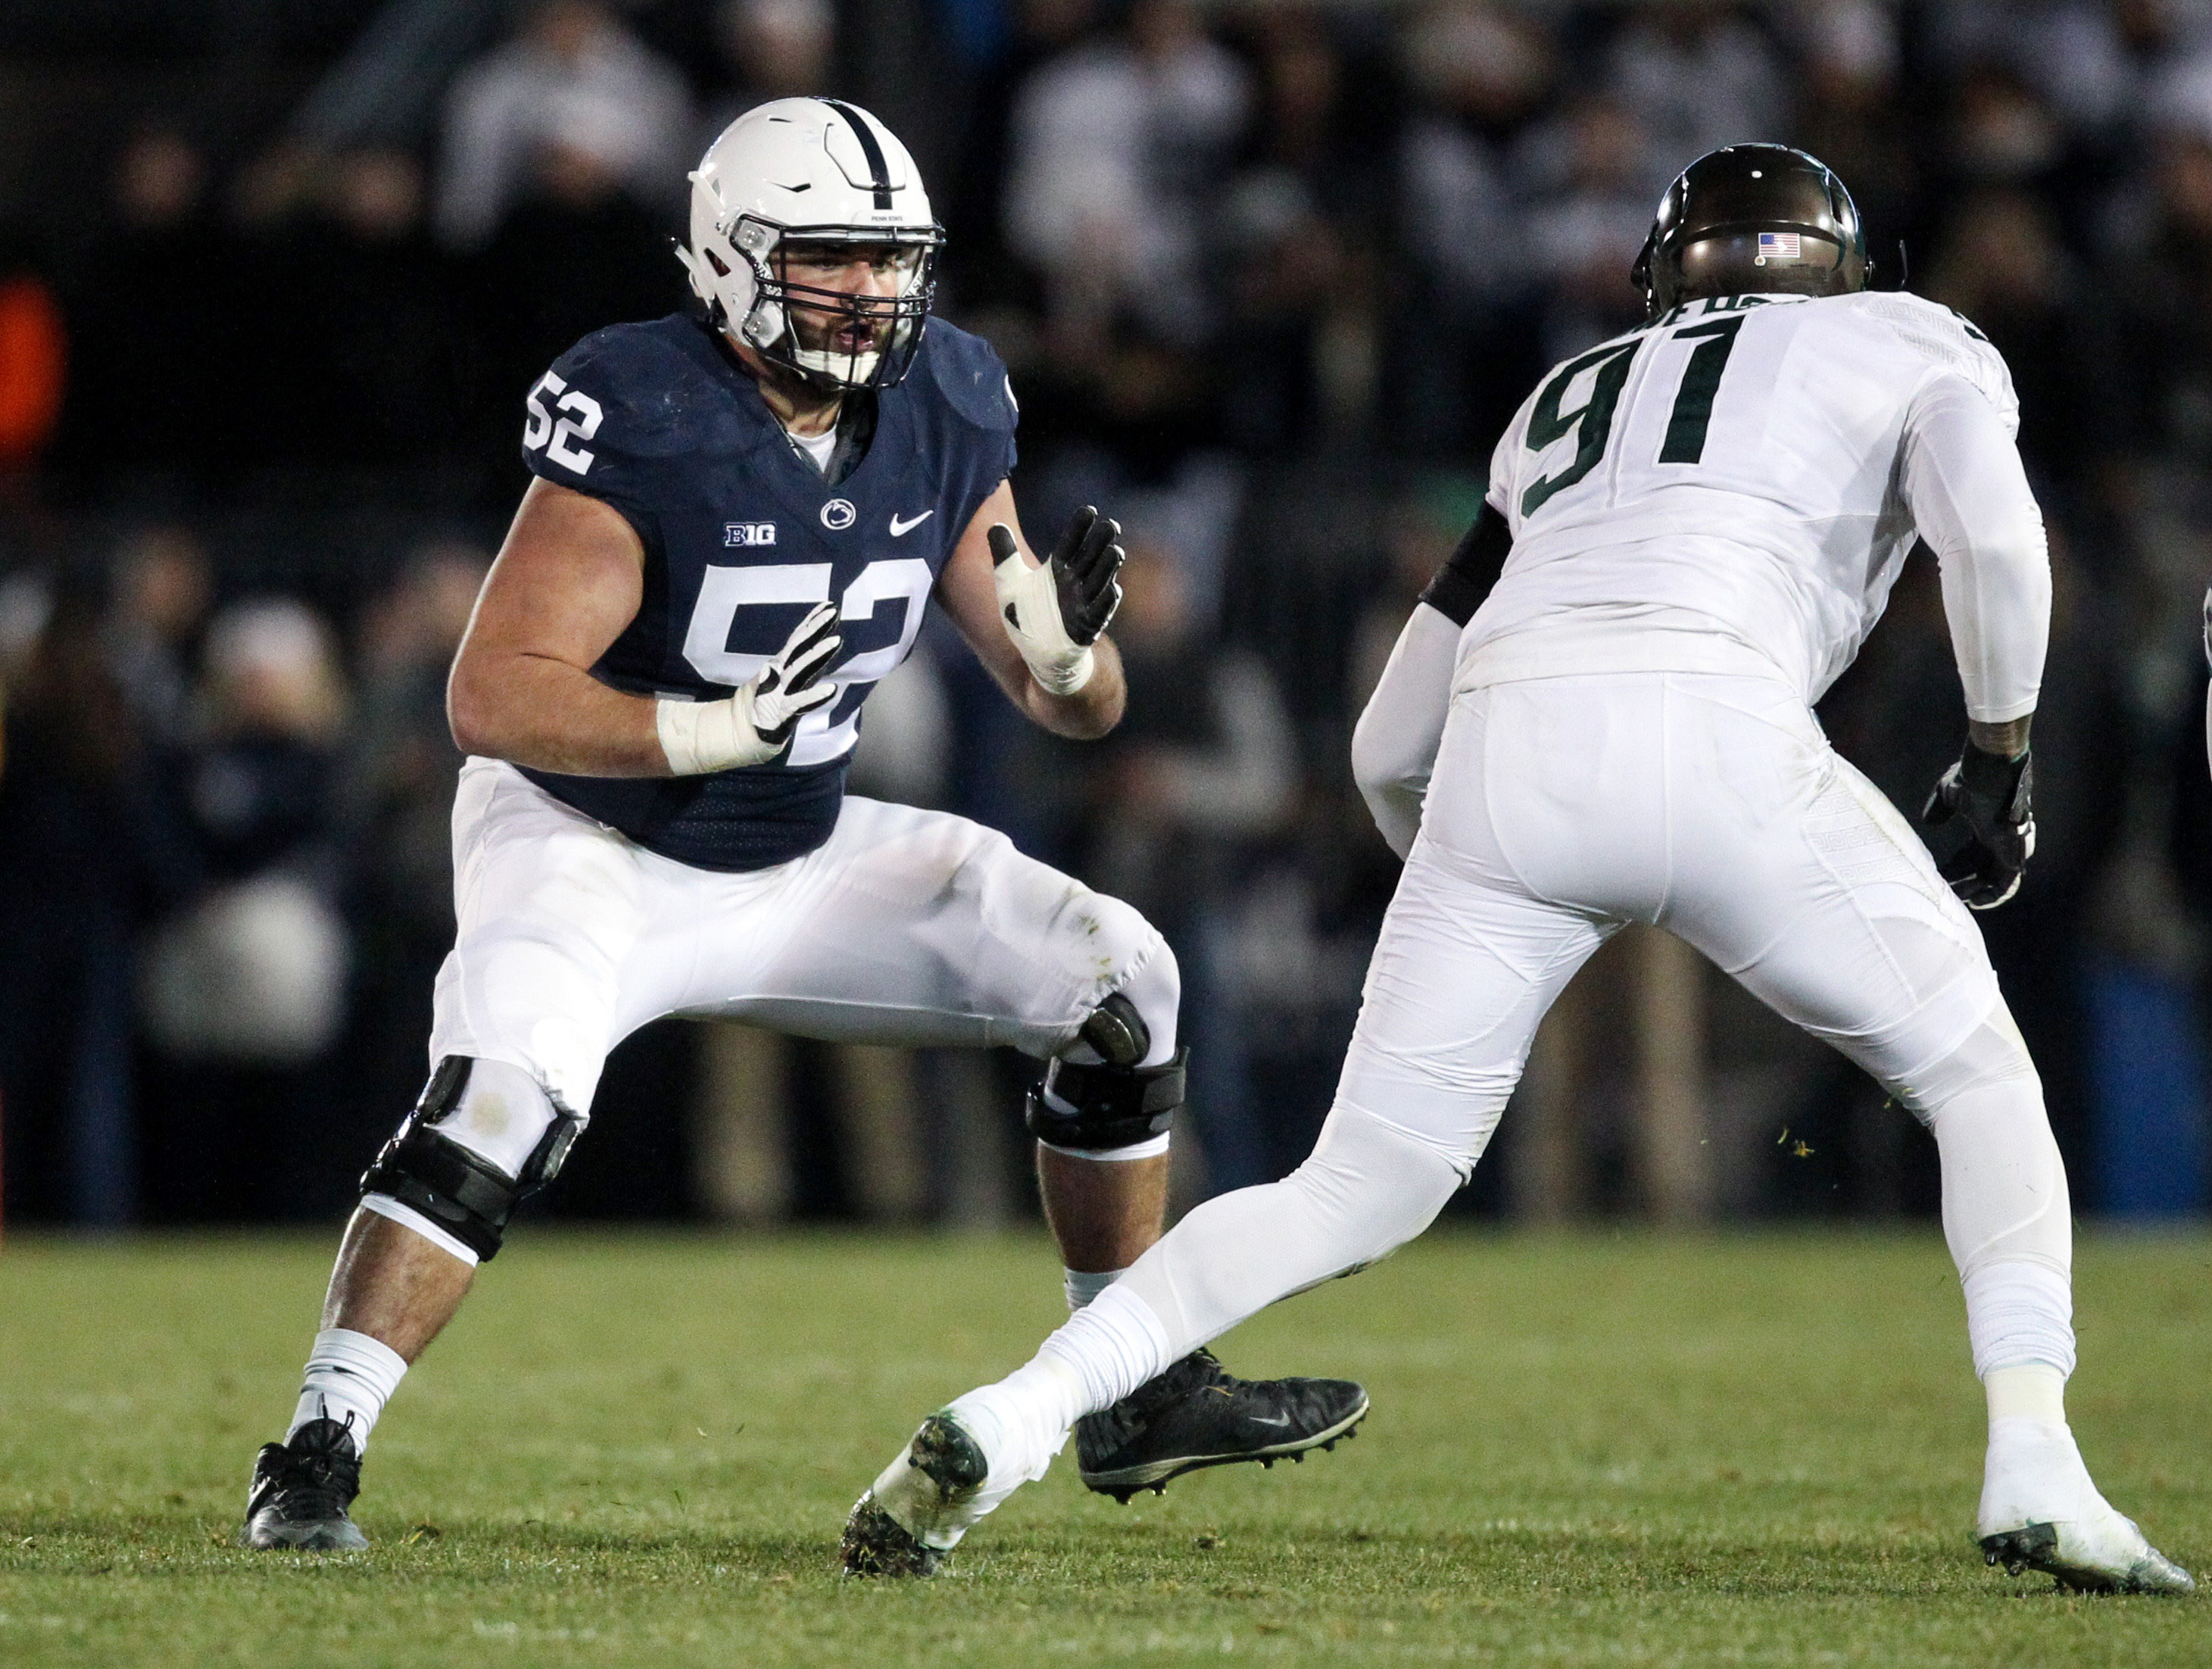 penn state football - photo #31